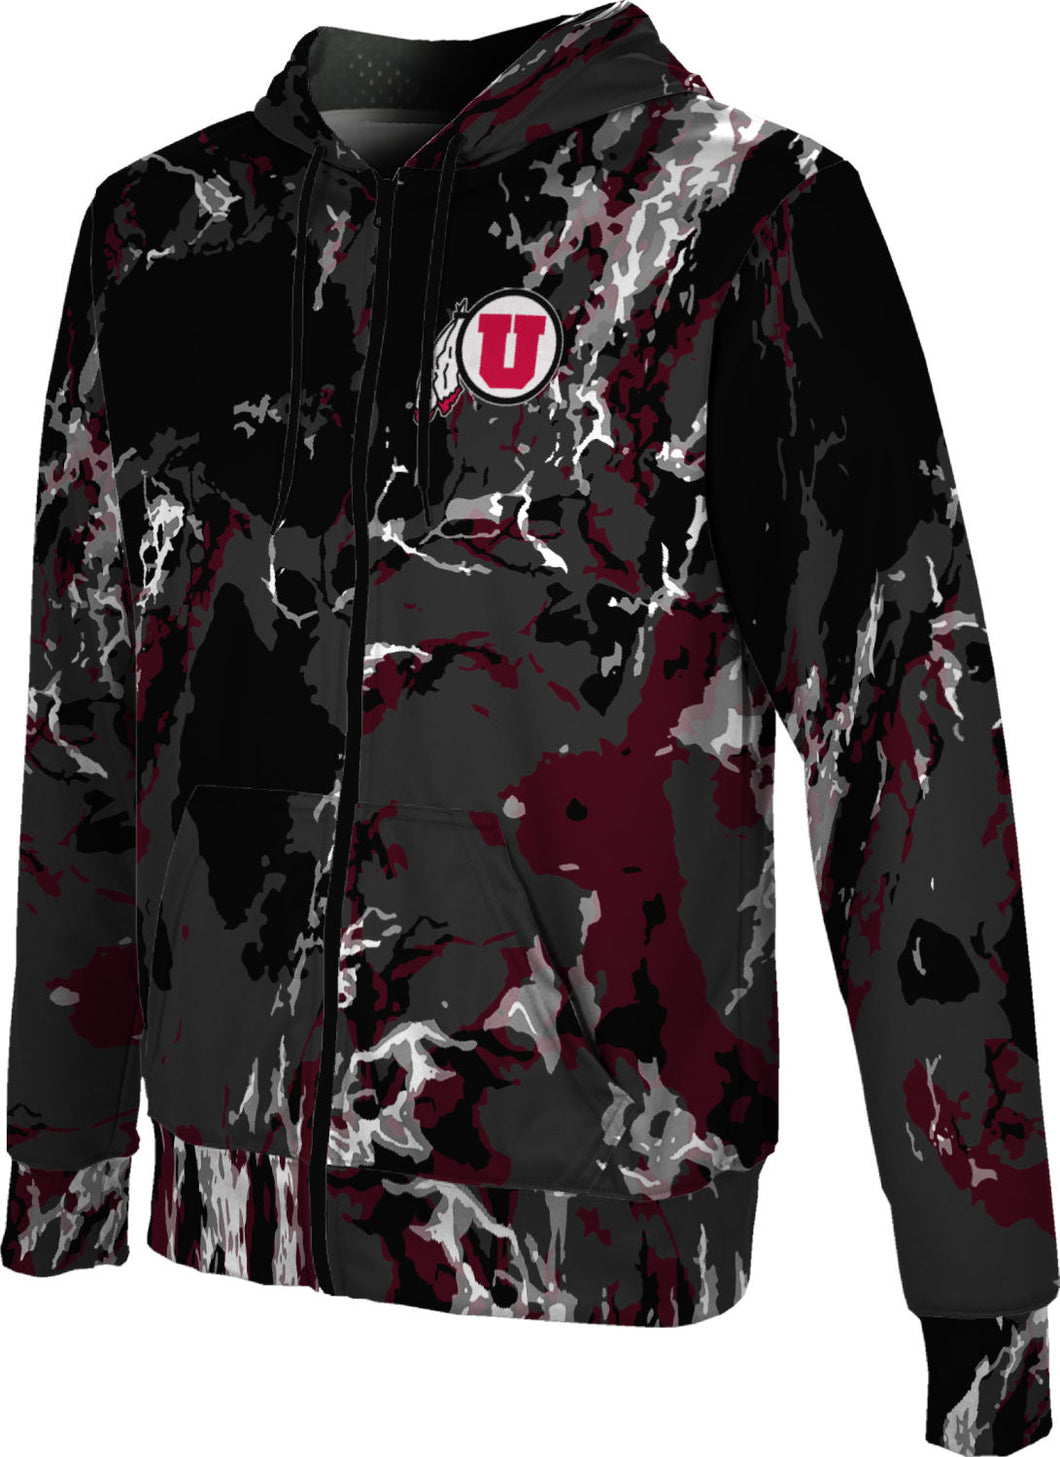 University of Utah: Boys' Full Zip Hoodie - Marble